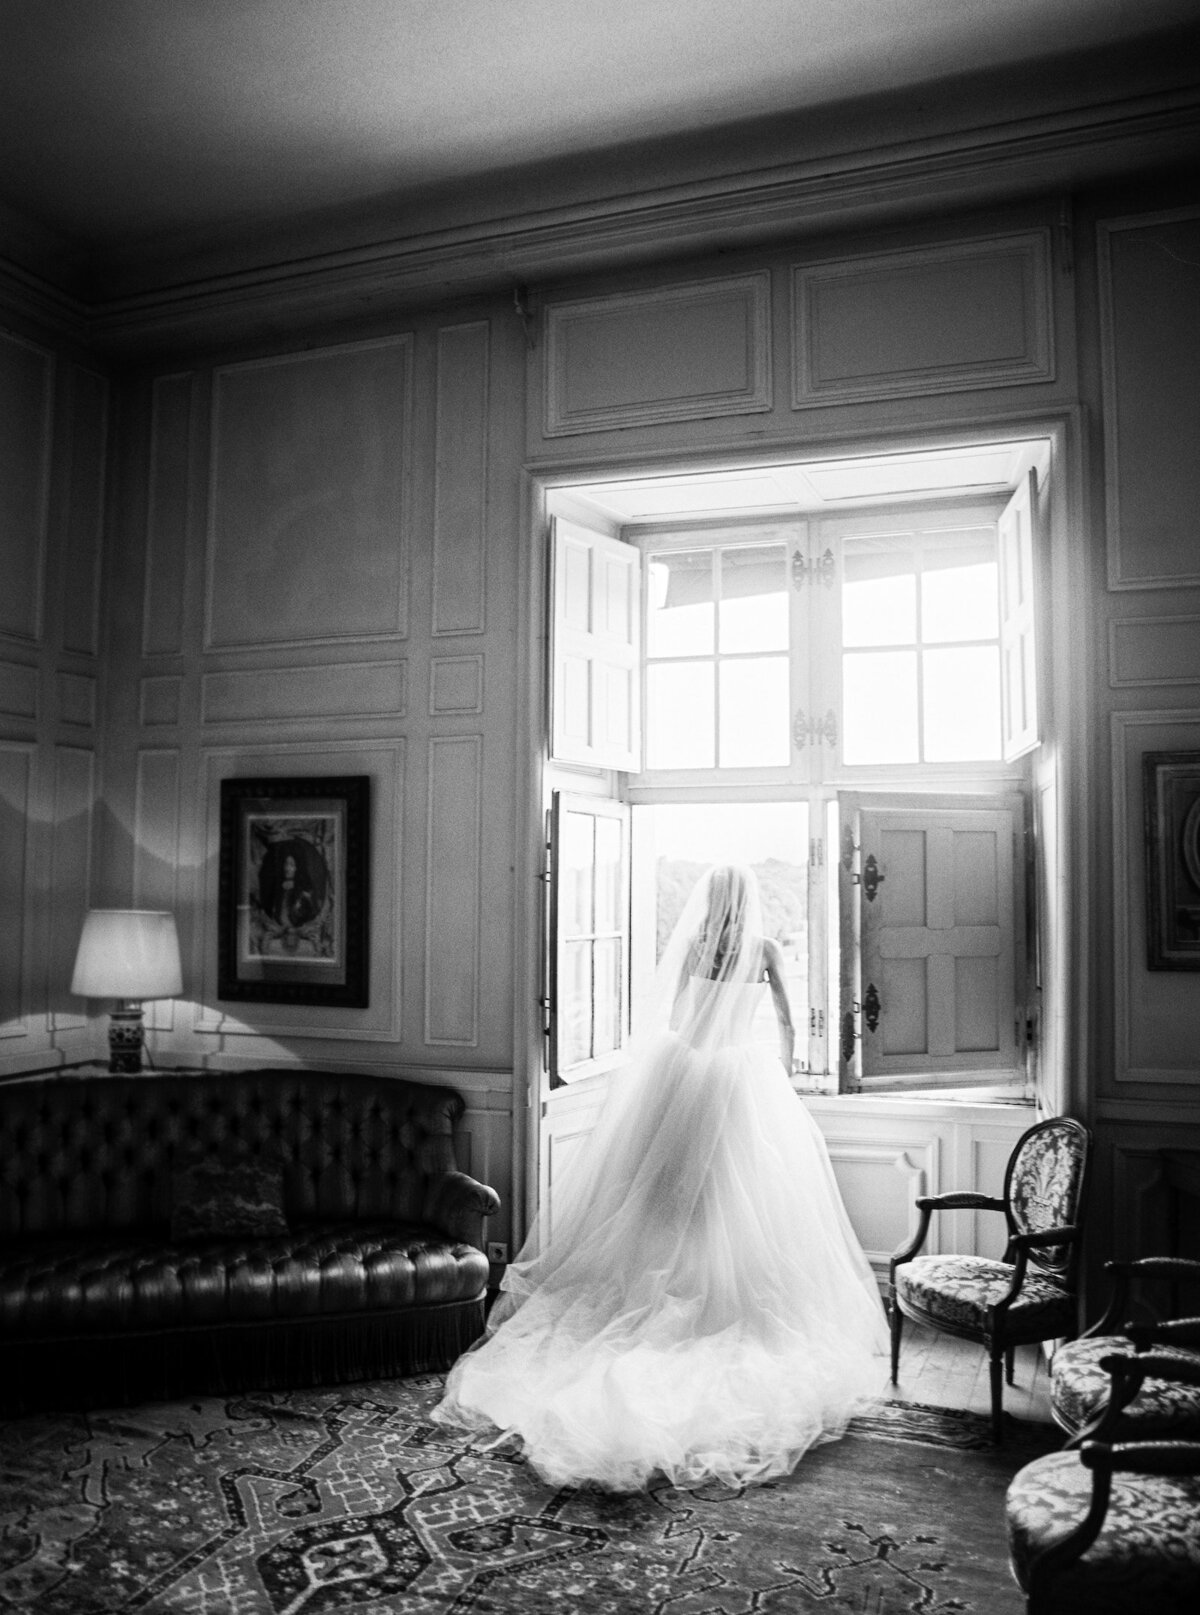 vaux-le-vicomte-luxury-wedding-phototographer-in-paris (56 of 56)